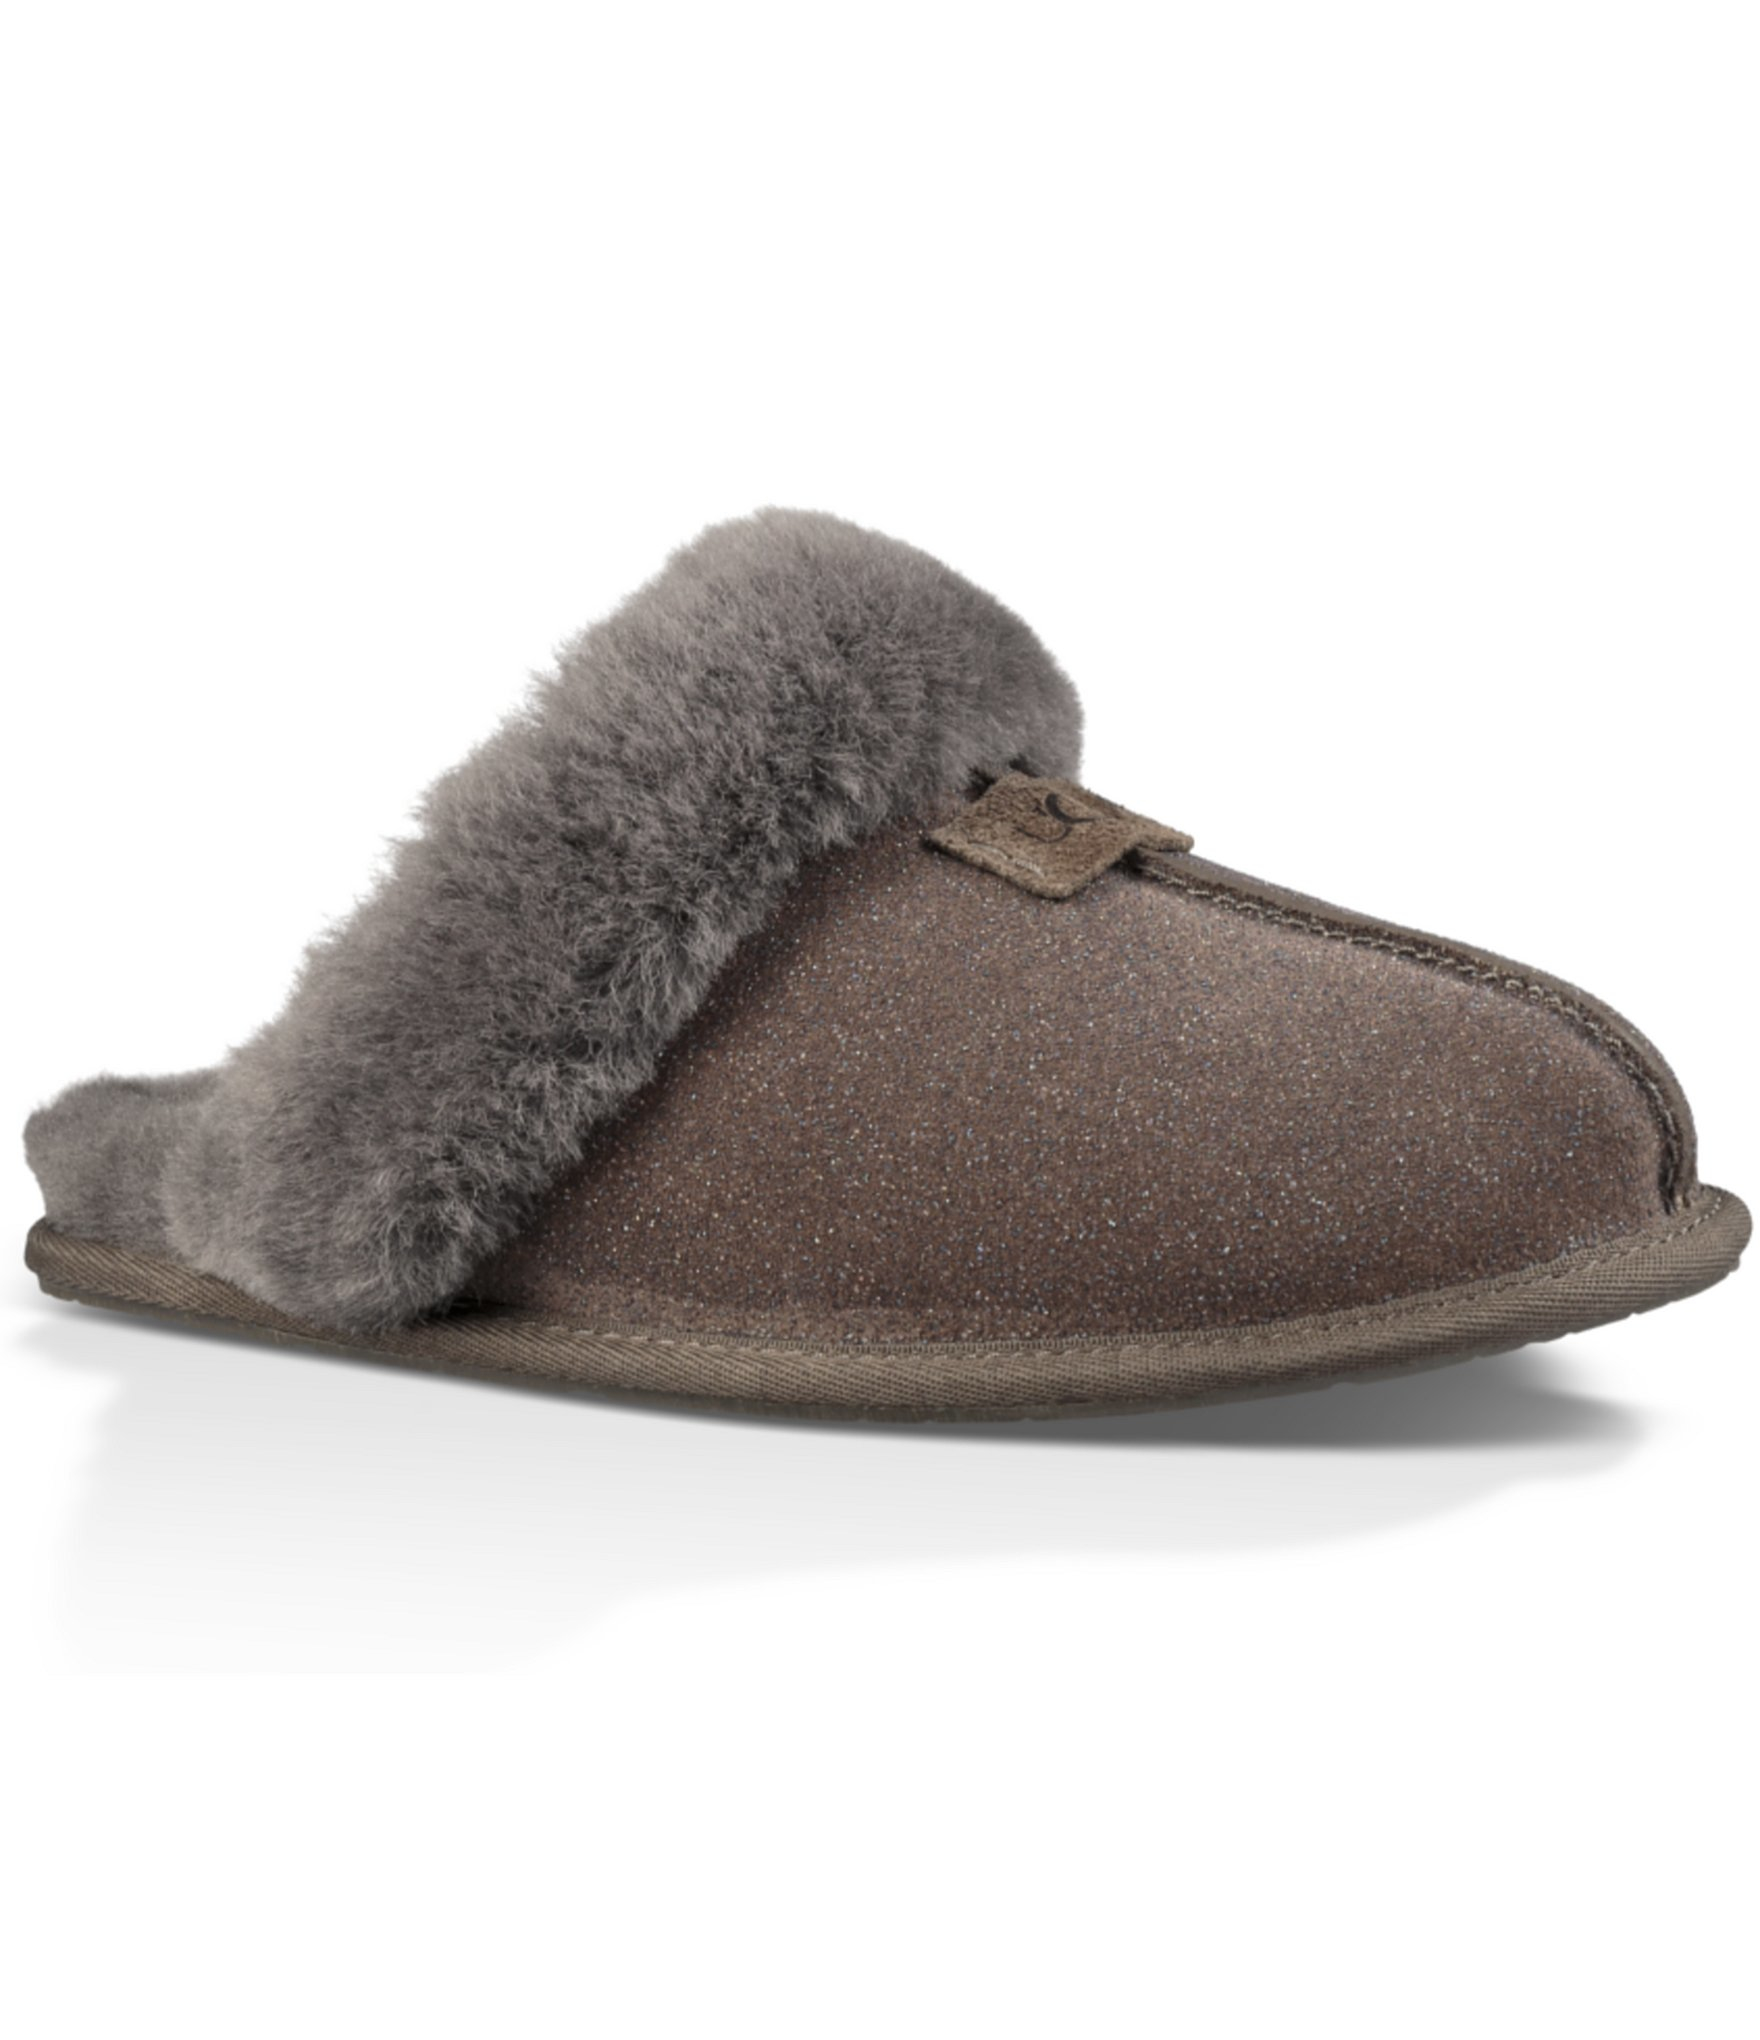 a675ea4c73e6 Ugg Scuffette Ii Slippers - cheap watches mgc-gas.com